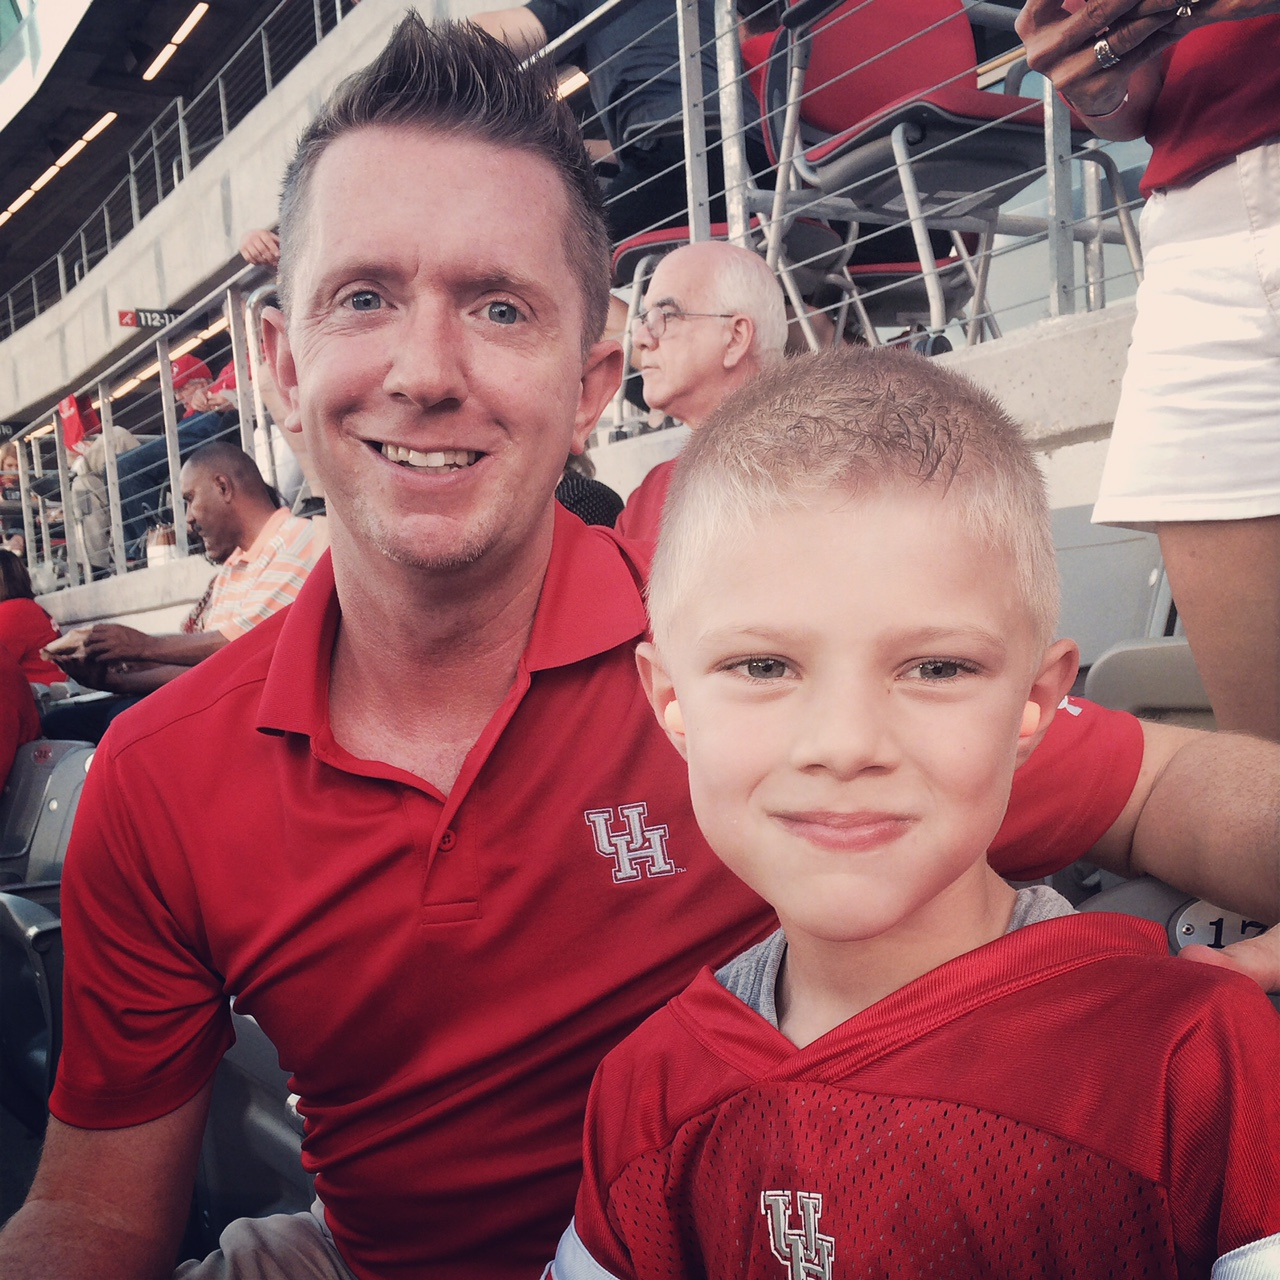 Godson Jax & Me @ UH game